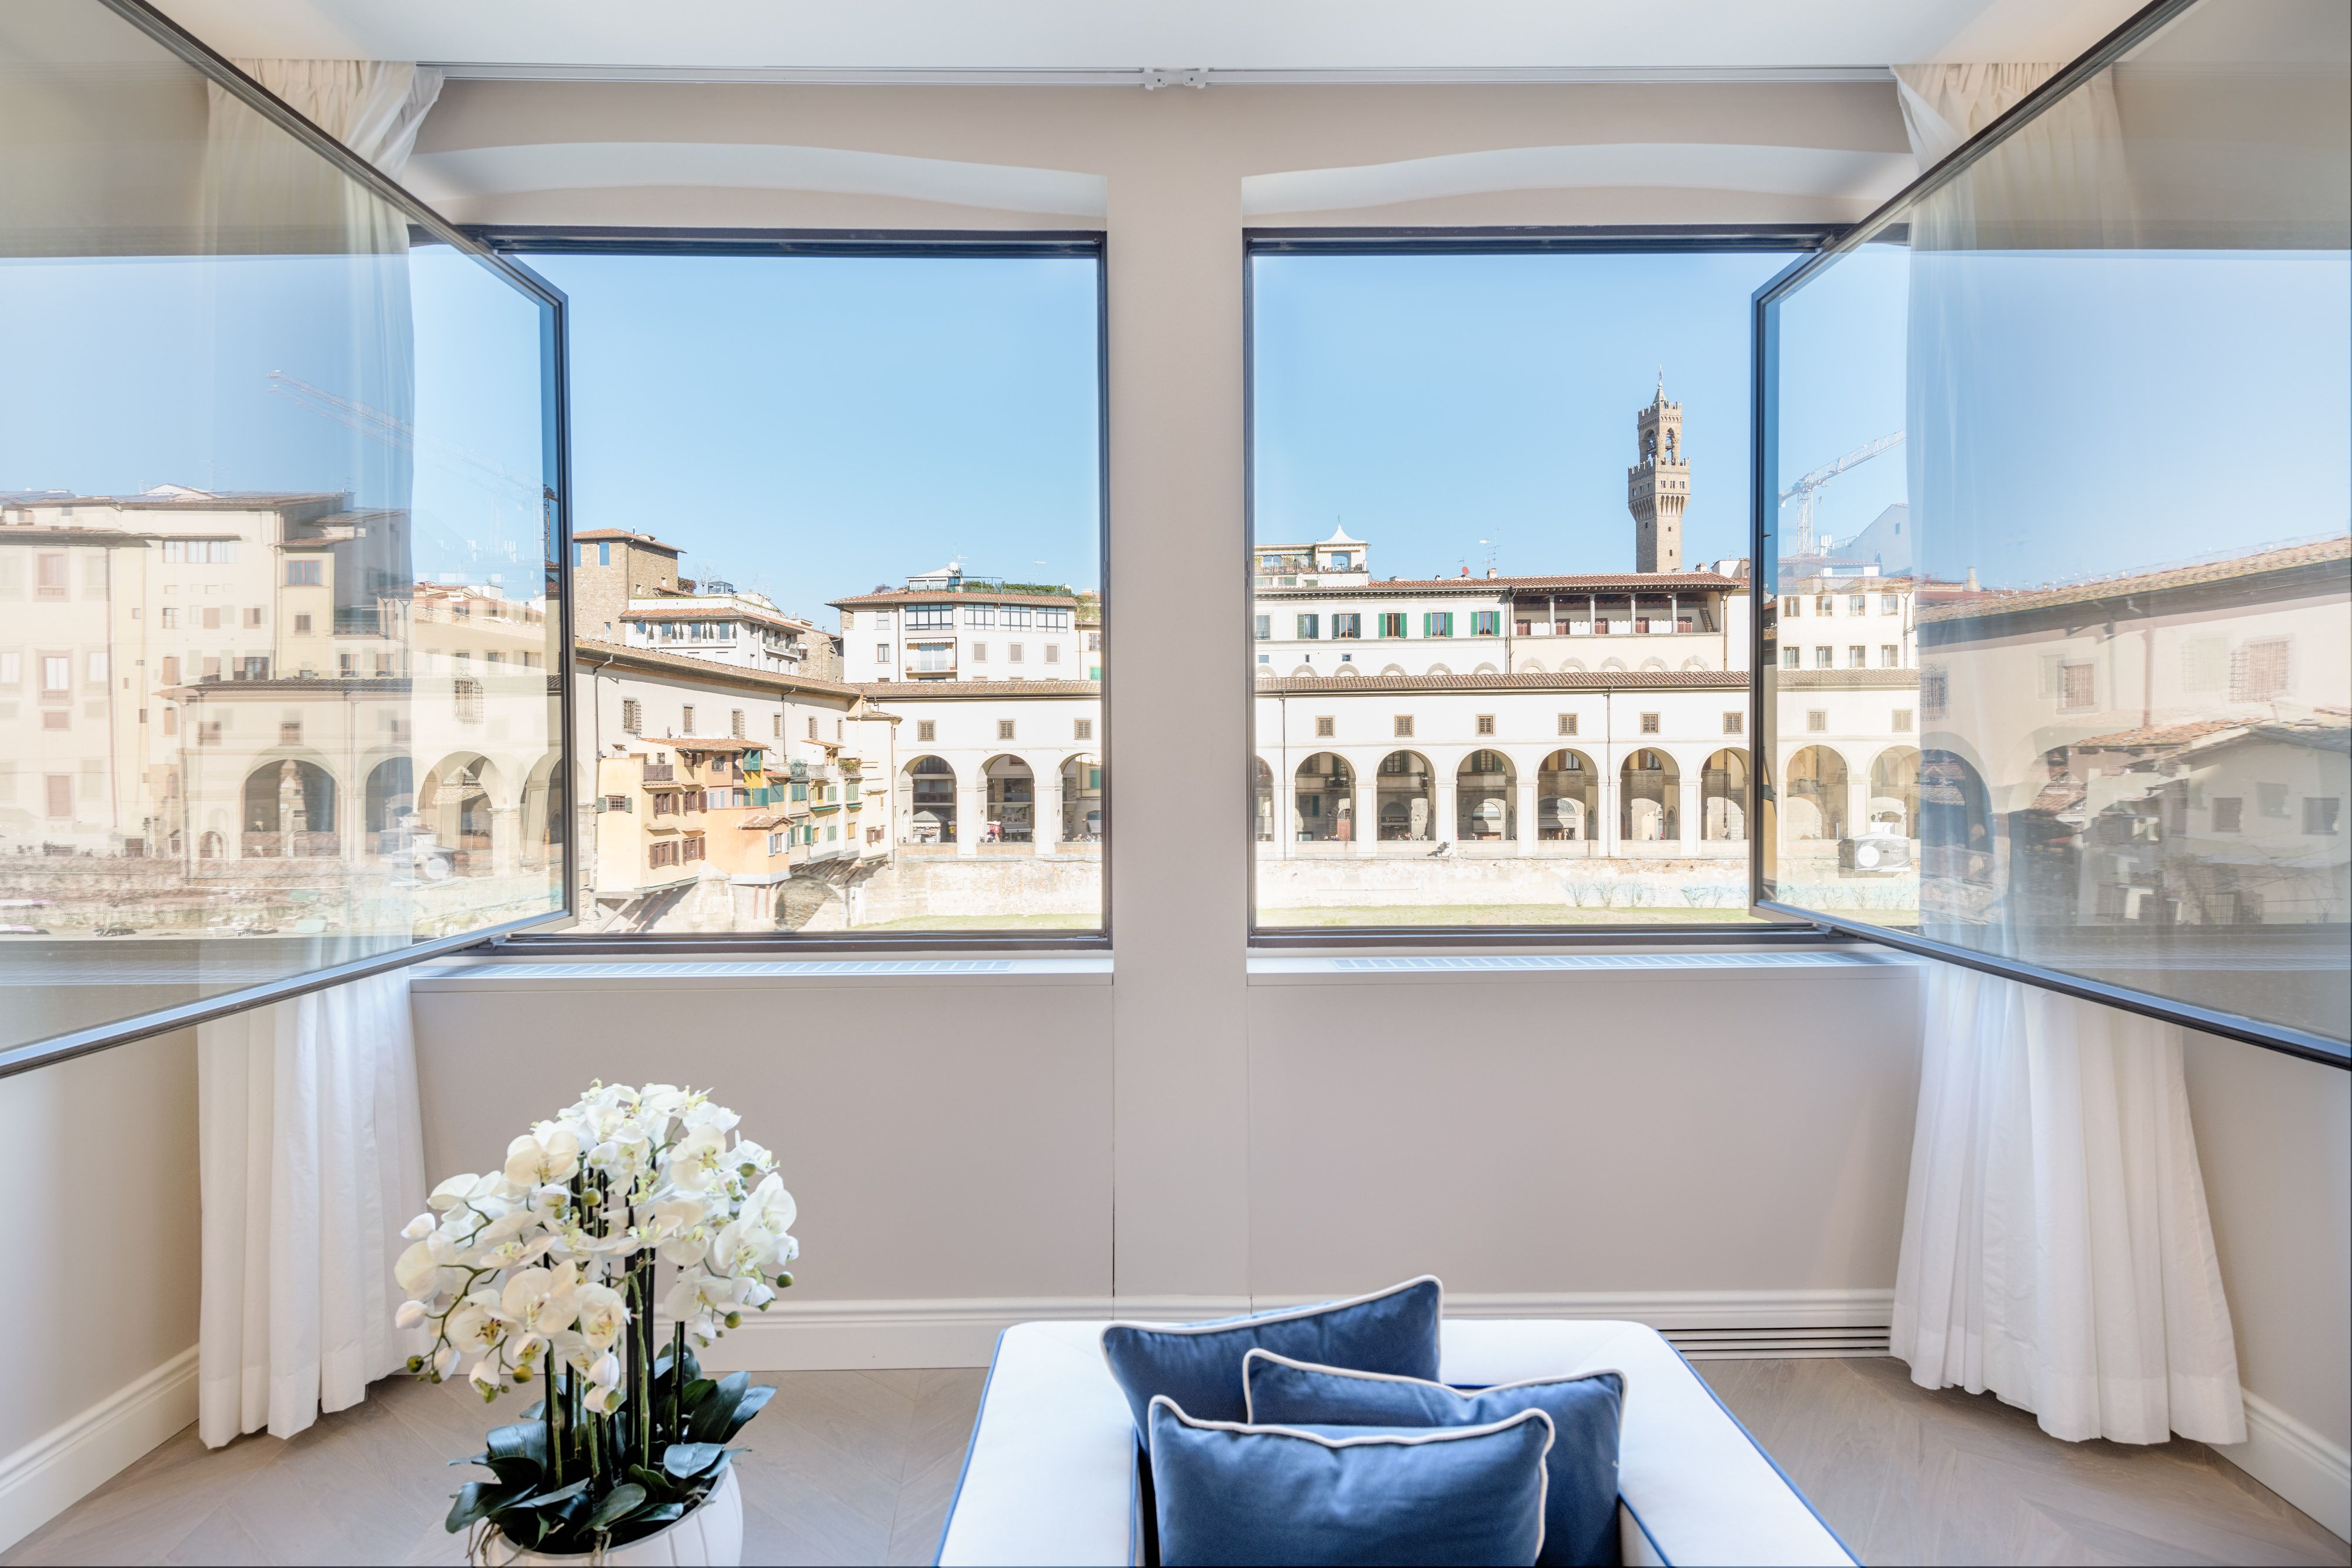 Can you imagine yourself here, in this luxury apartment ...